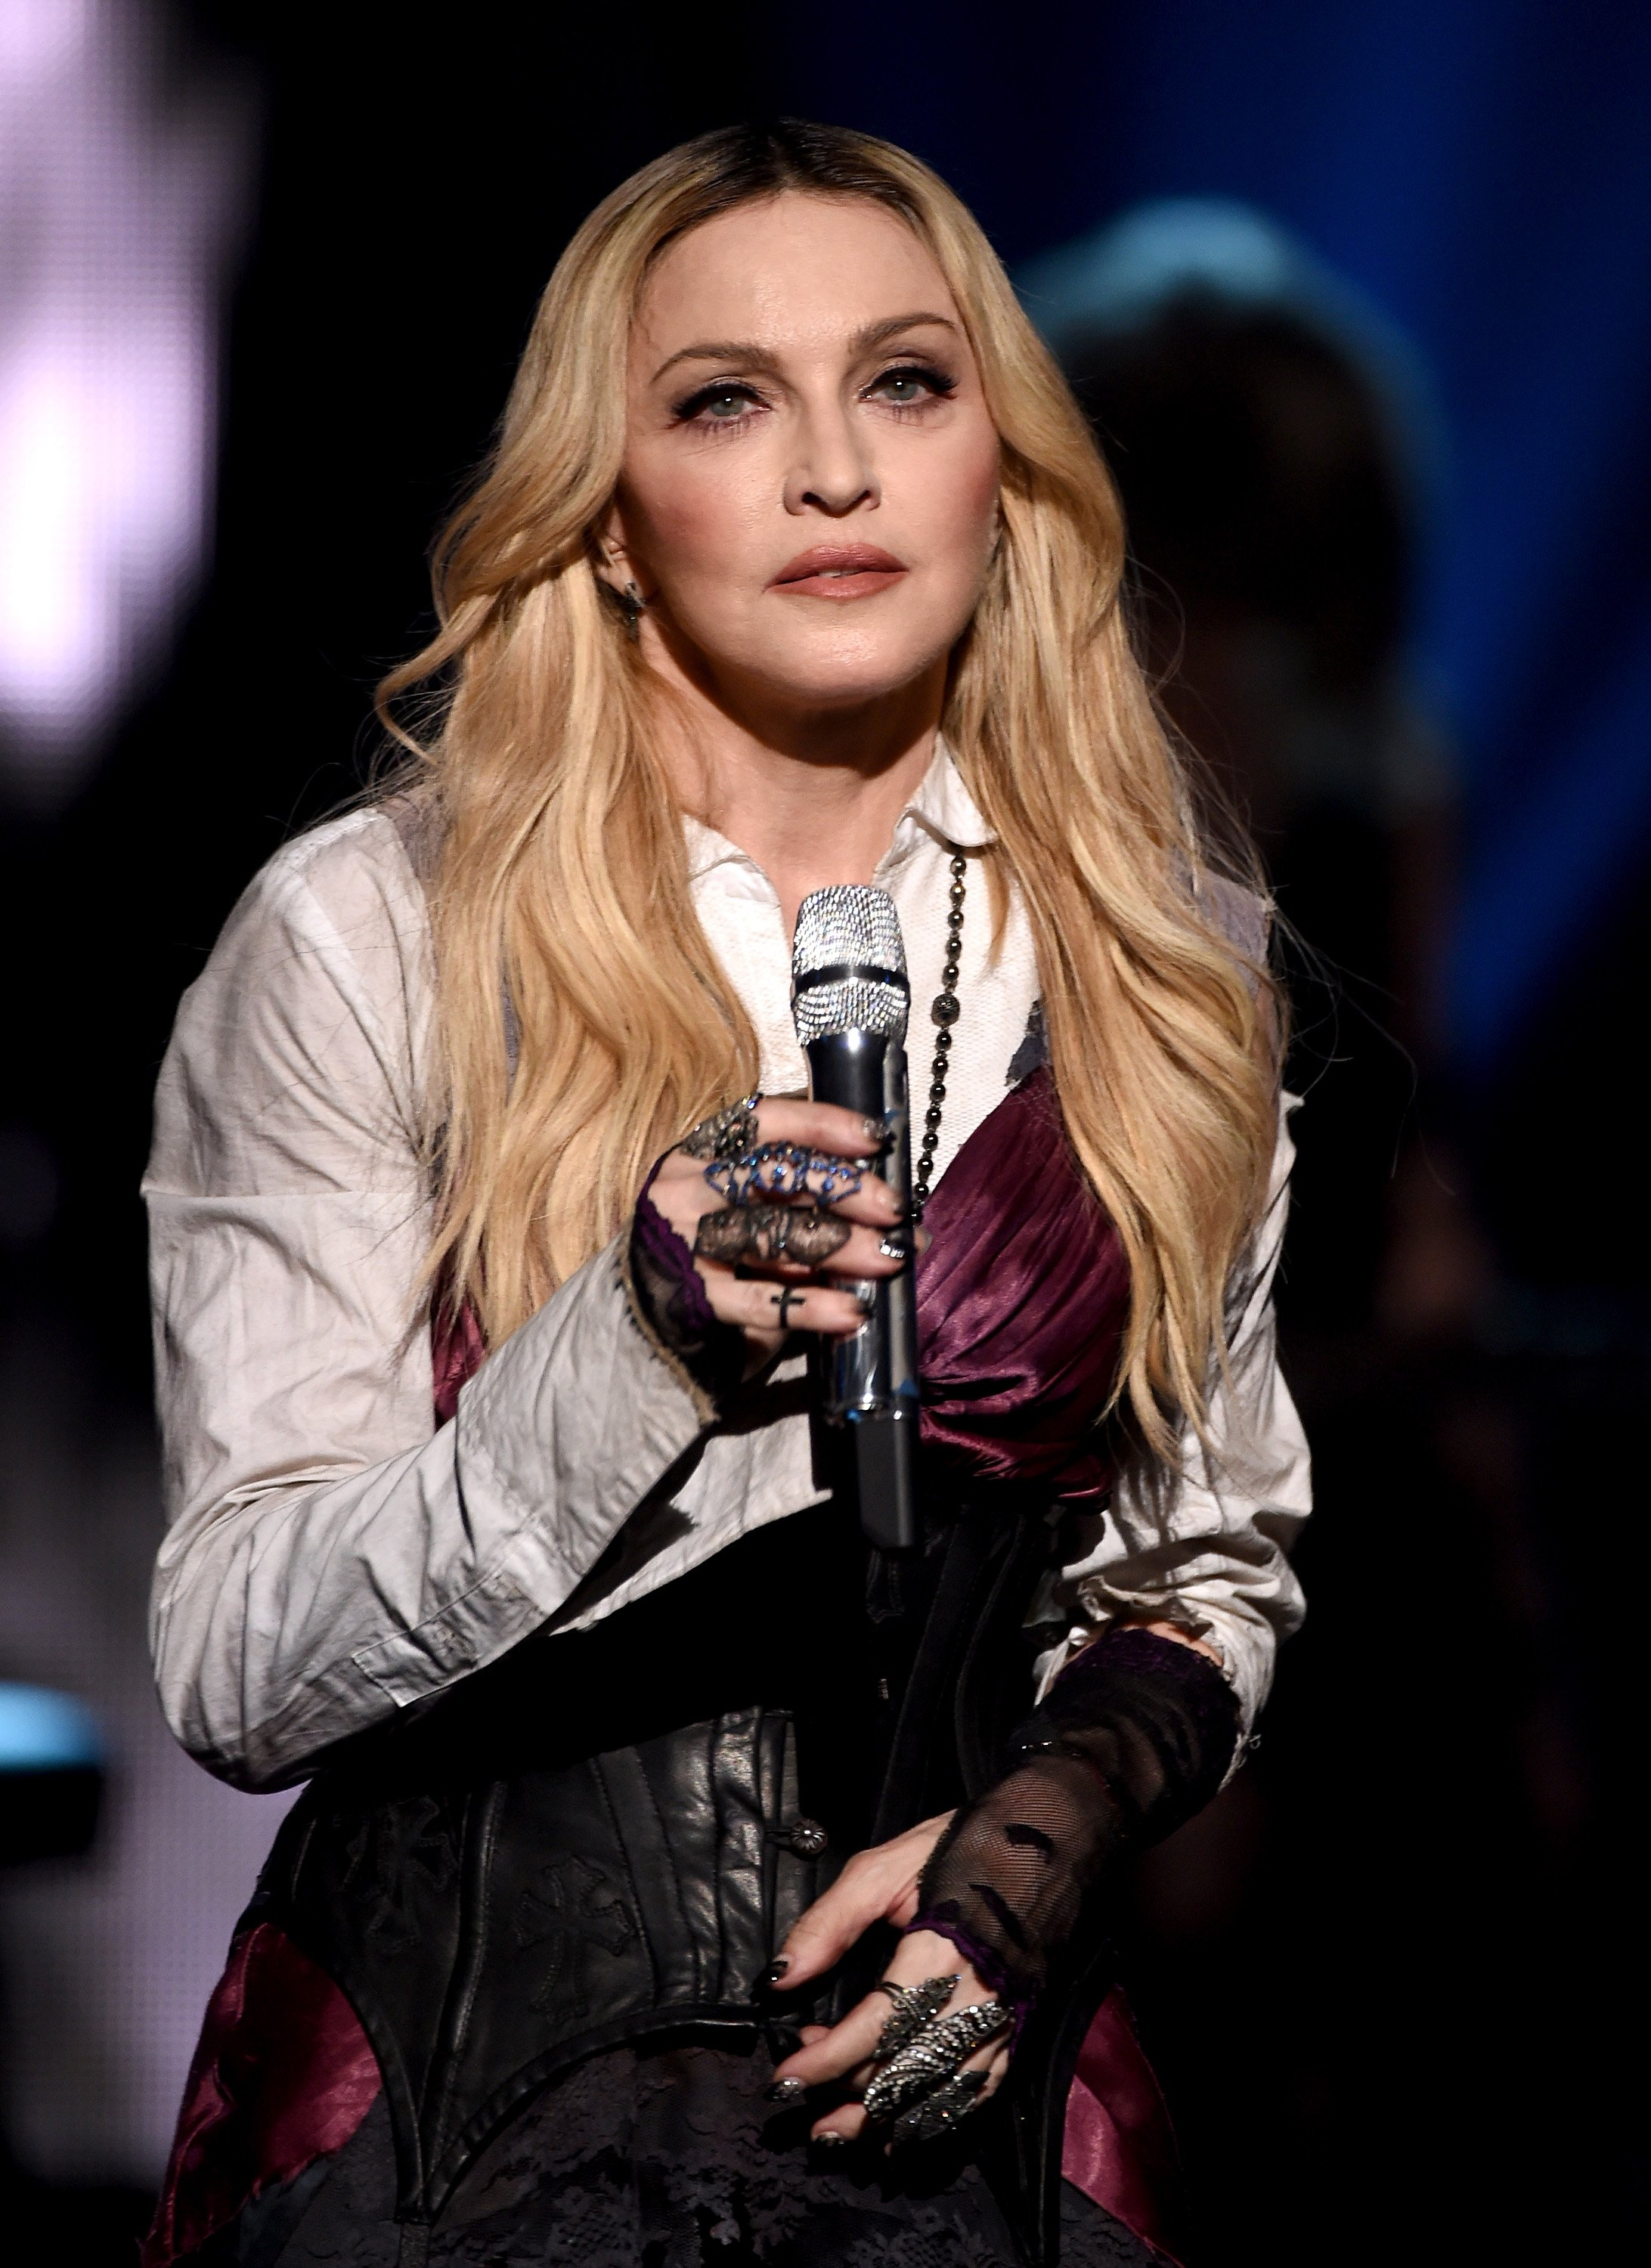 Madonna at the 2015 iHeartRadio Music Awards on March 29, 2015 in Los Angeles, California | Photo: GettyImages